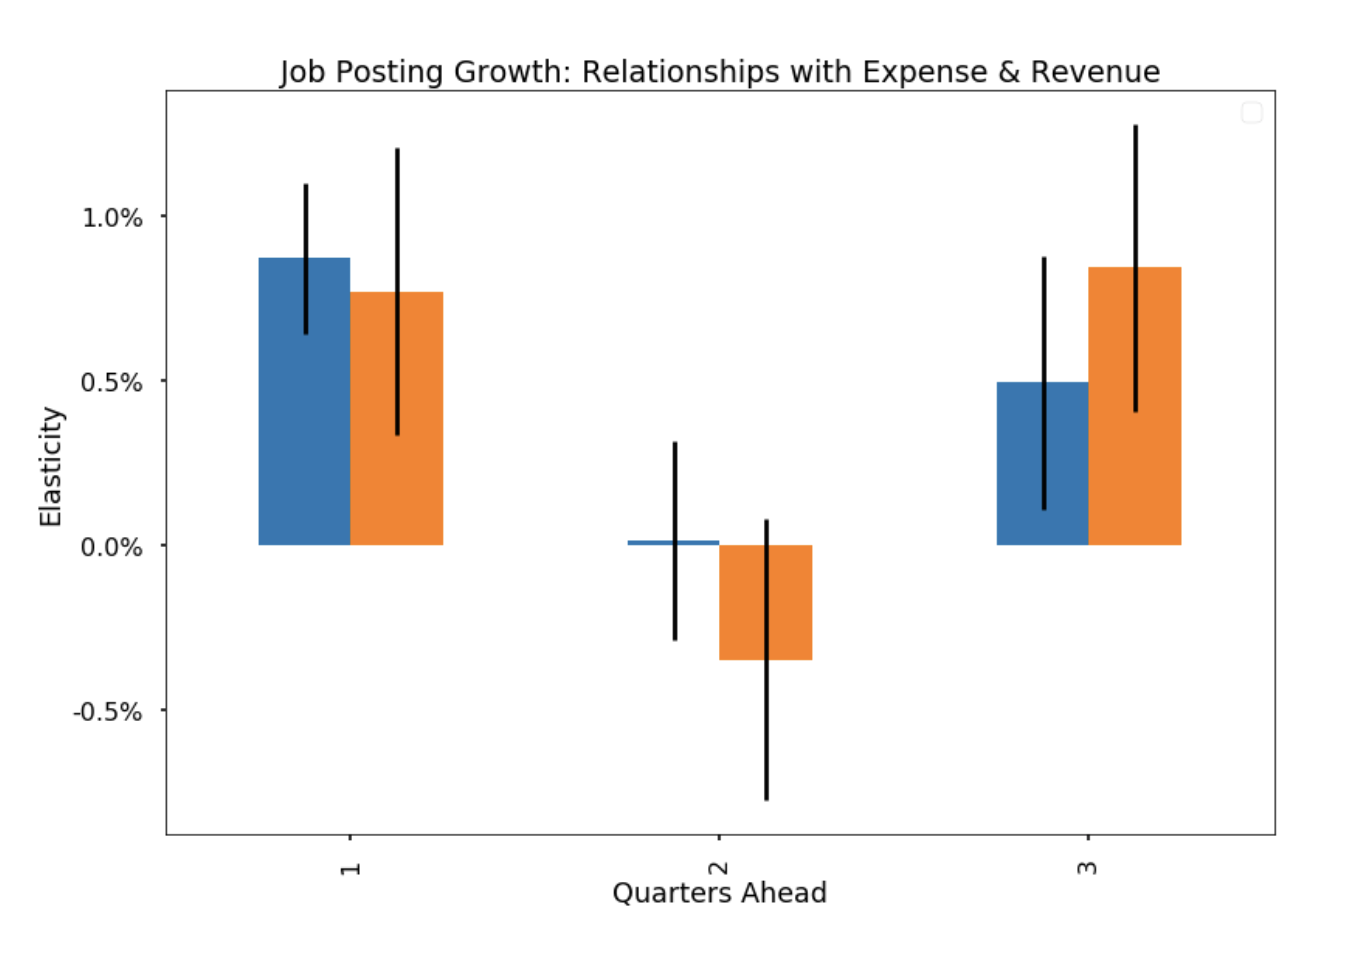 Chart 2: The elasticity of job posting growth and the future growth of expense and revenue